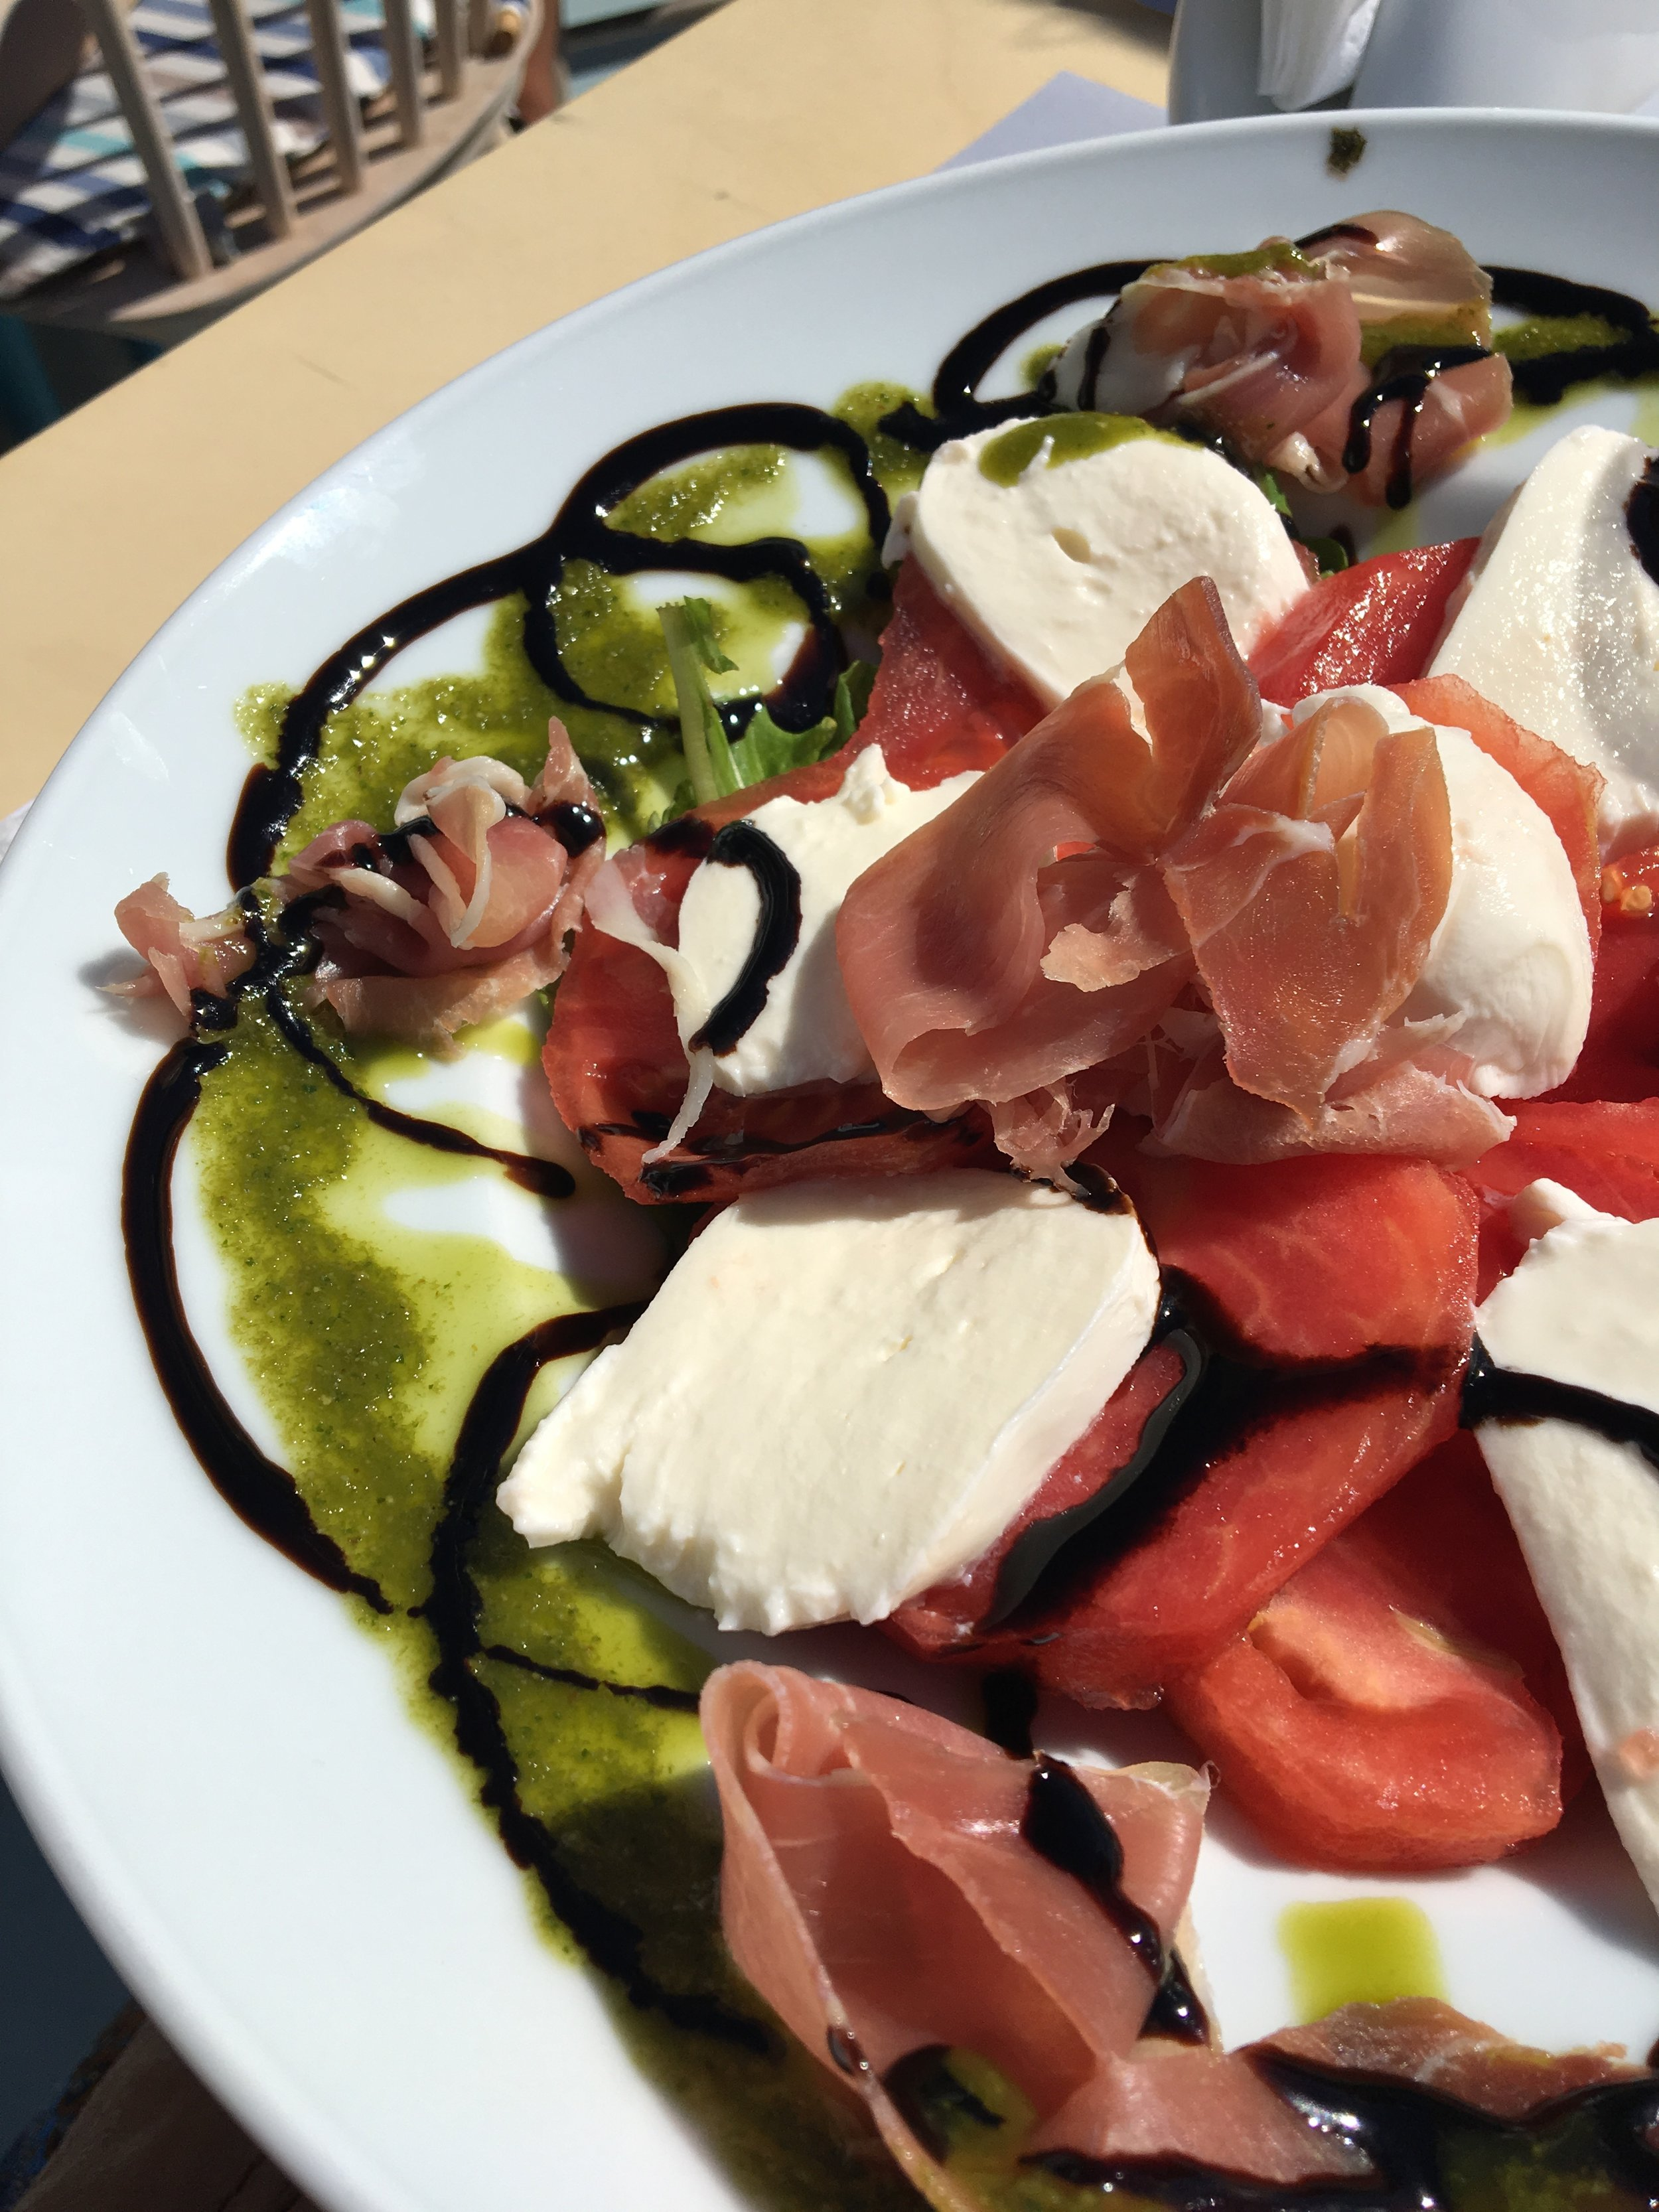 To this delicious caprese salad I ate in Santorini, Greece: I love you.